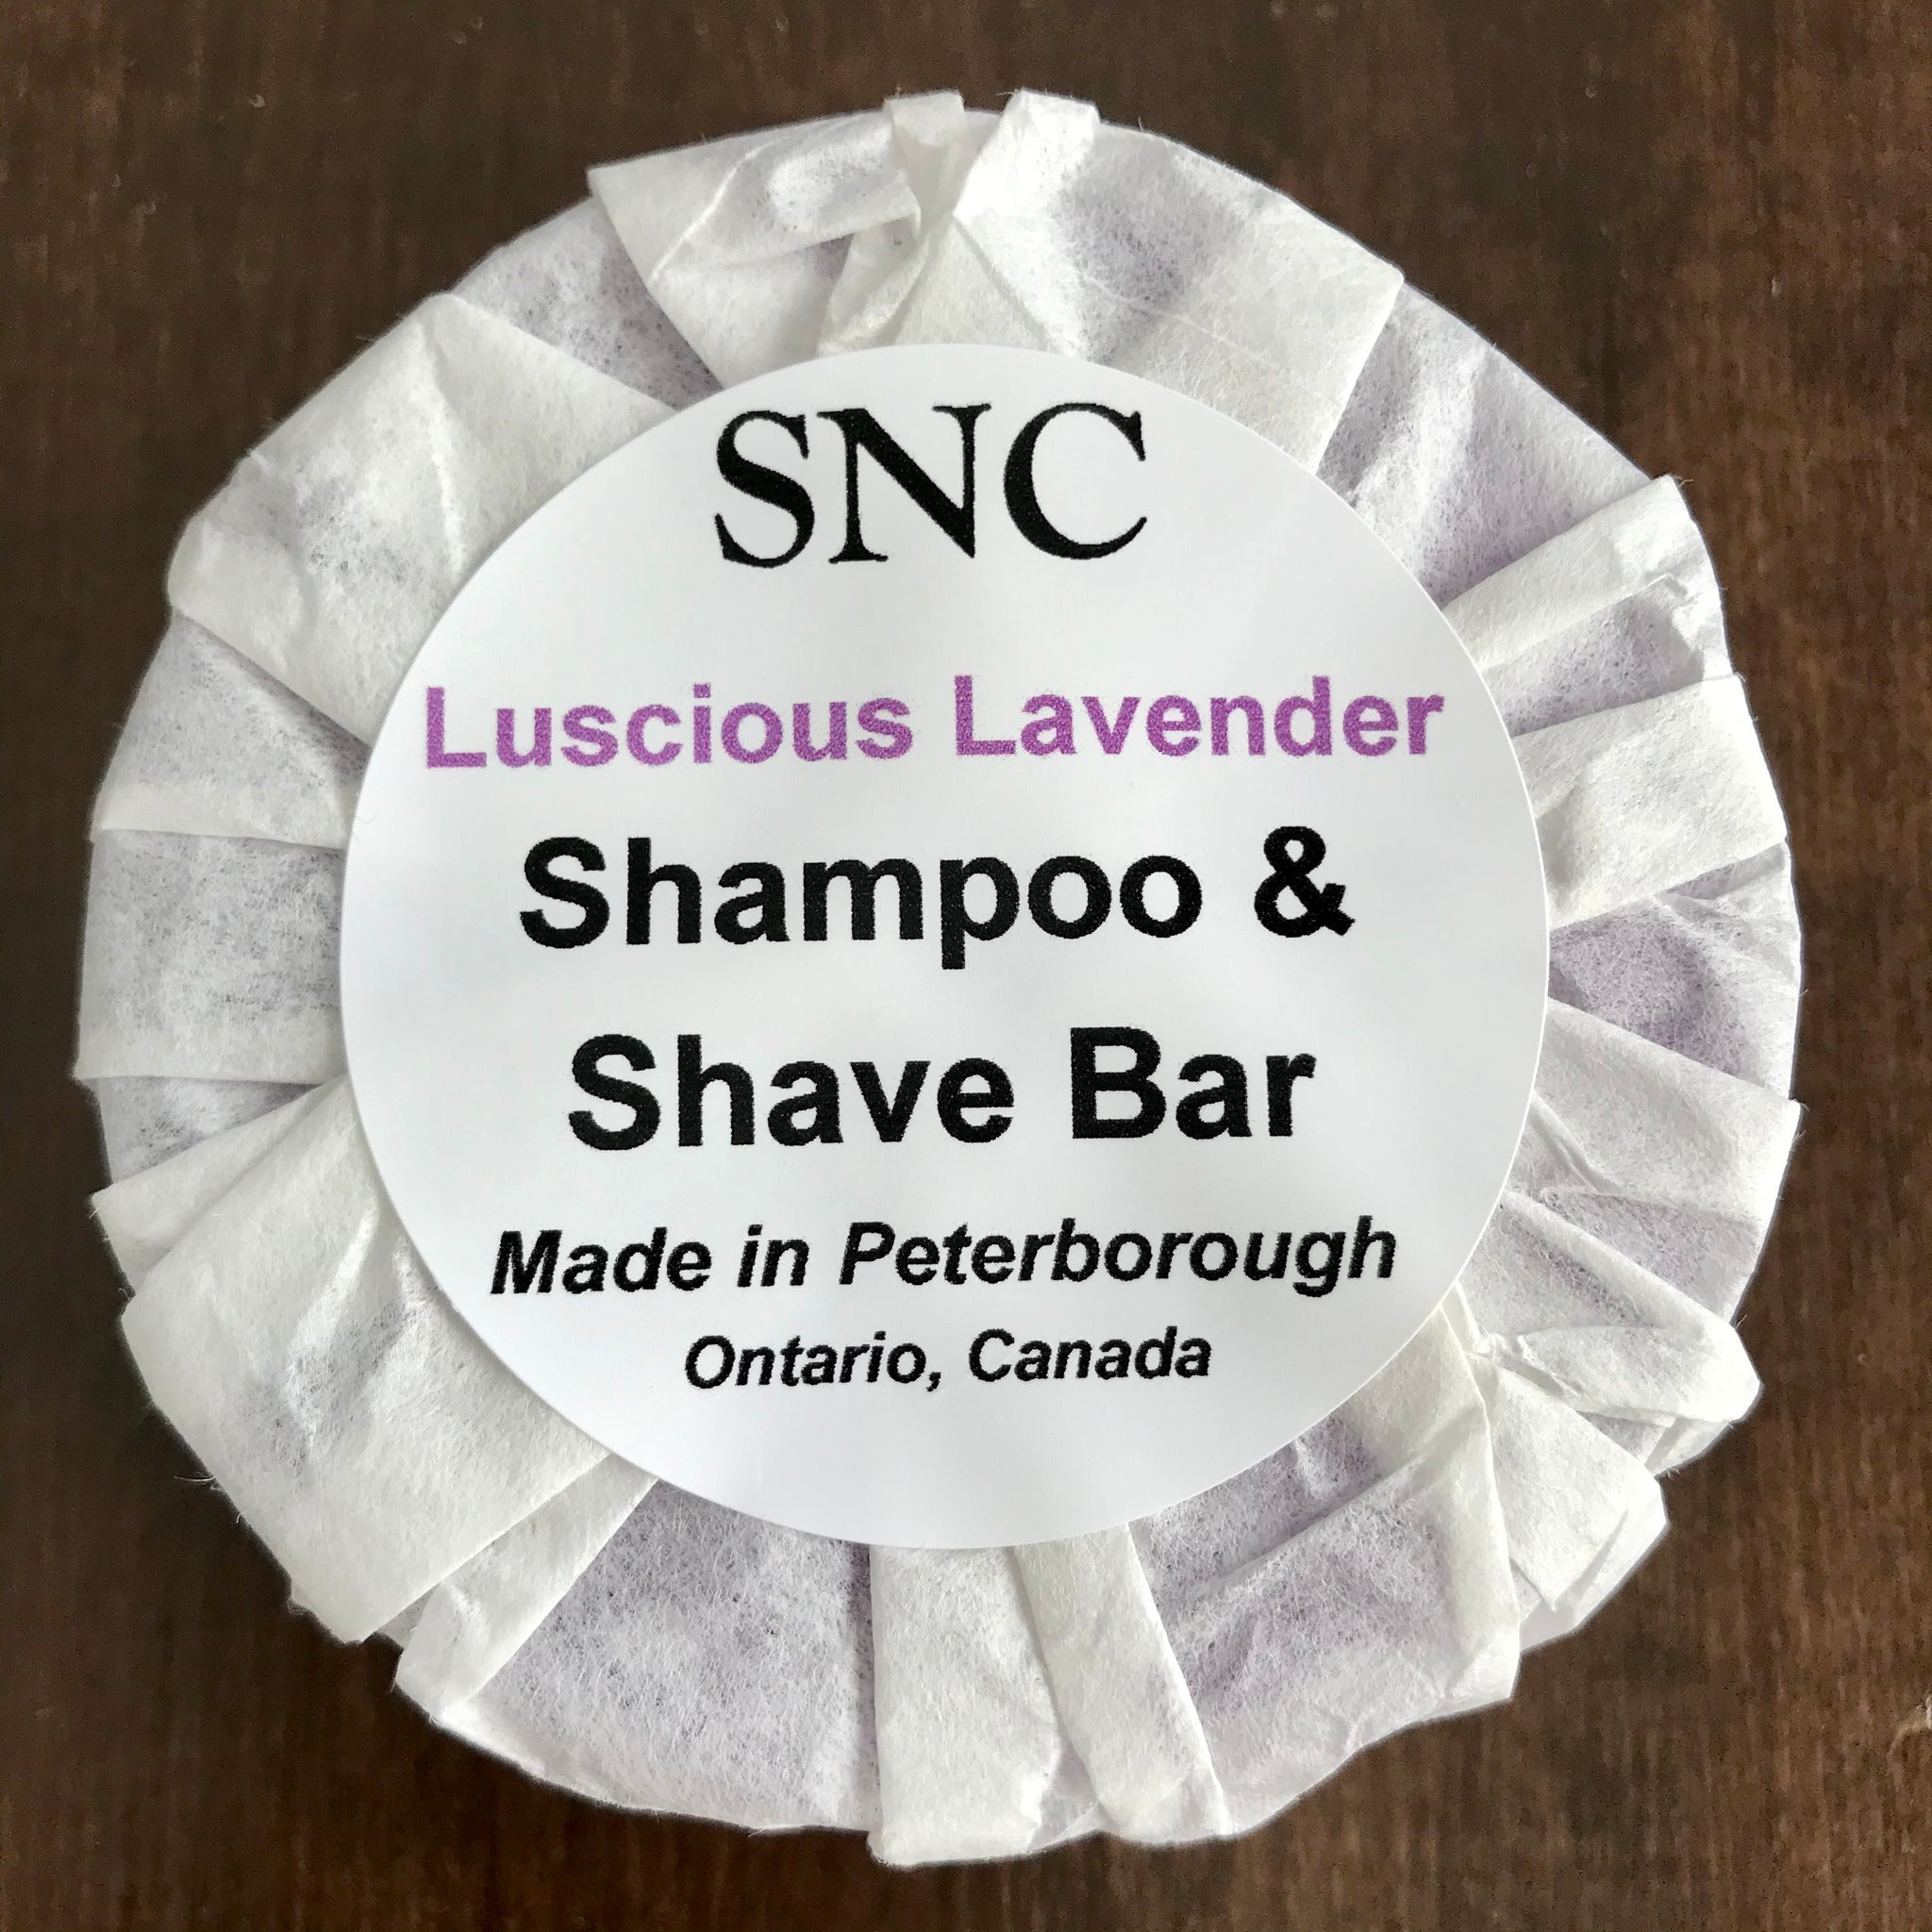 Luscious Lavender Shampoo and Shave Bar